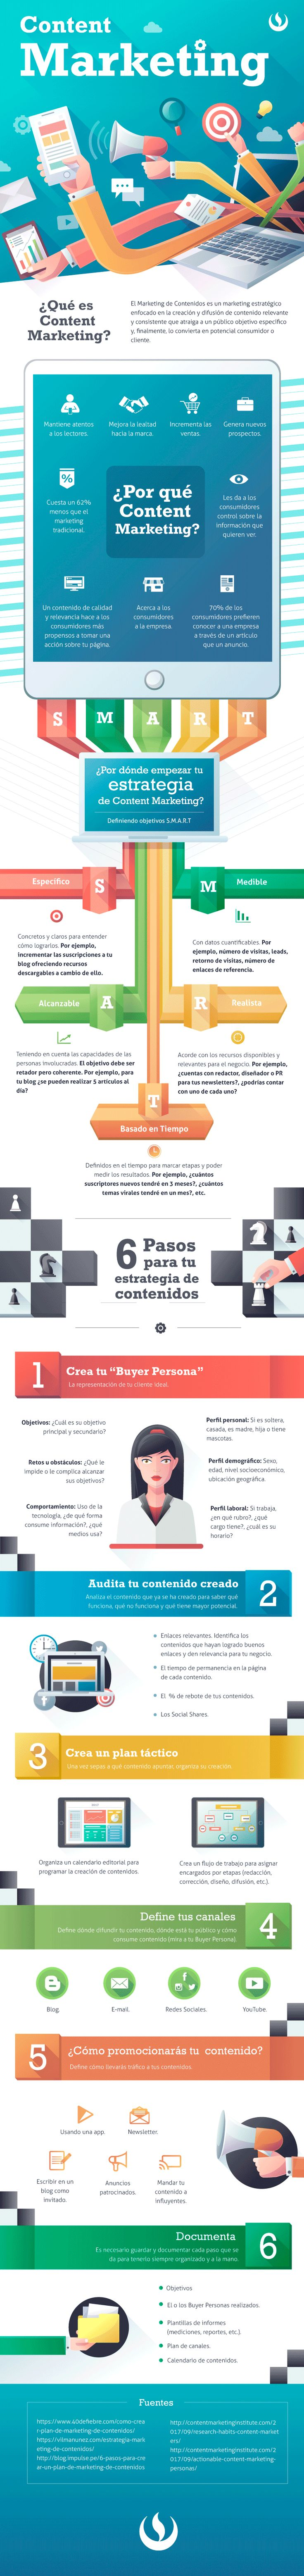 Content Marketing: todo lo que debes saber #infografia